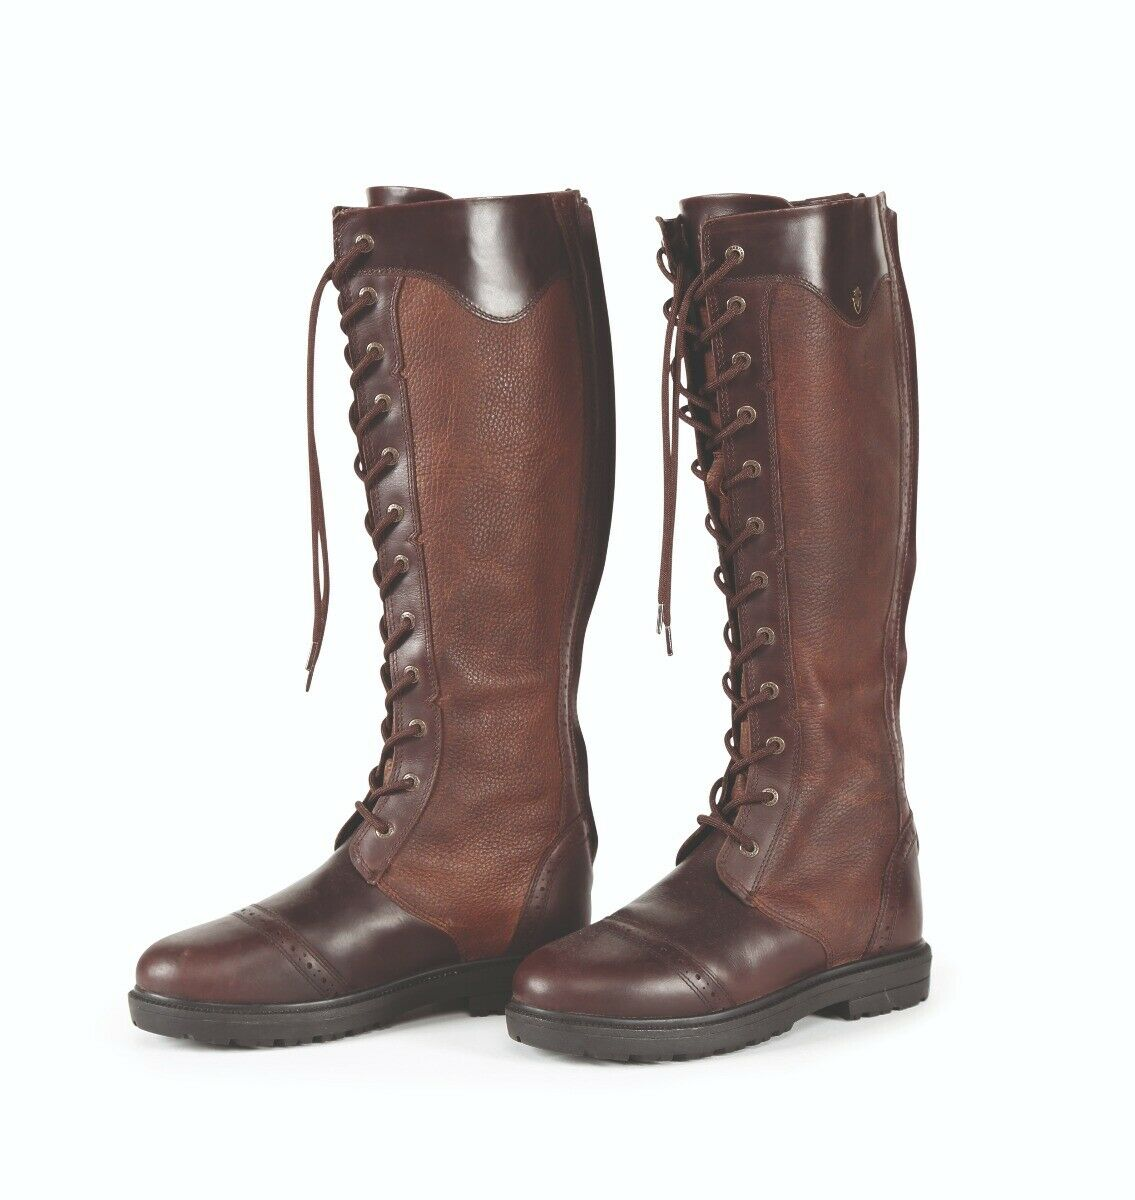 Shires Moretta  Ariana Lace Up Boots  promotional items